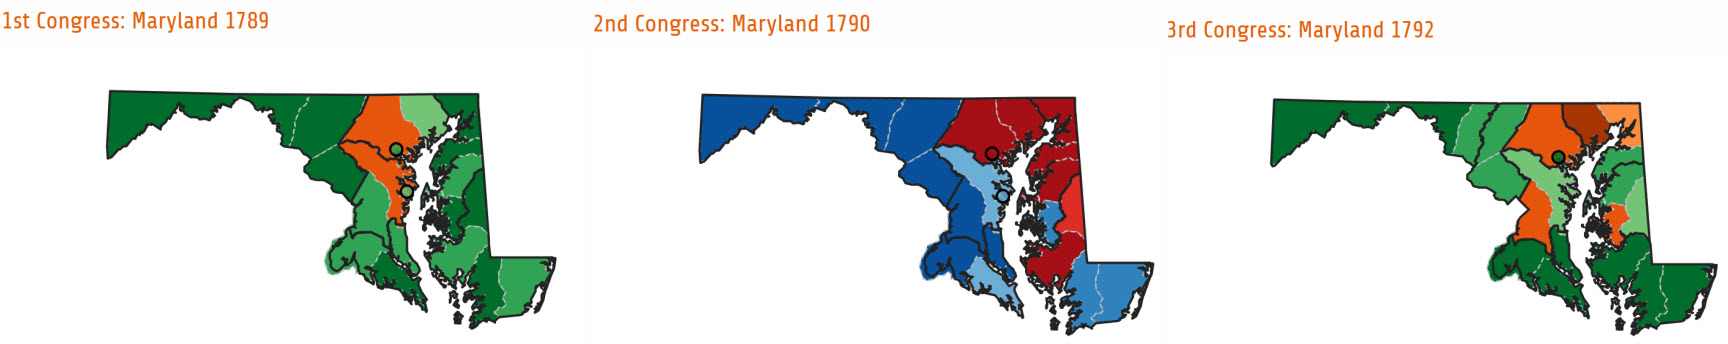 Shifting votes for parties in the first three Congressional elections in Maryland.